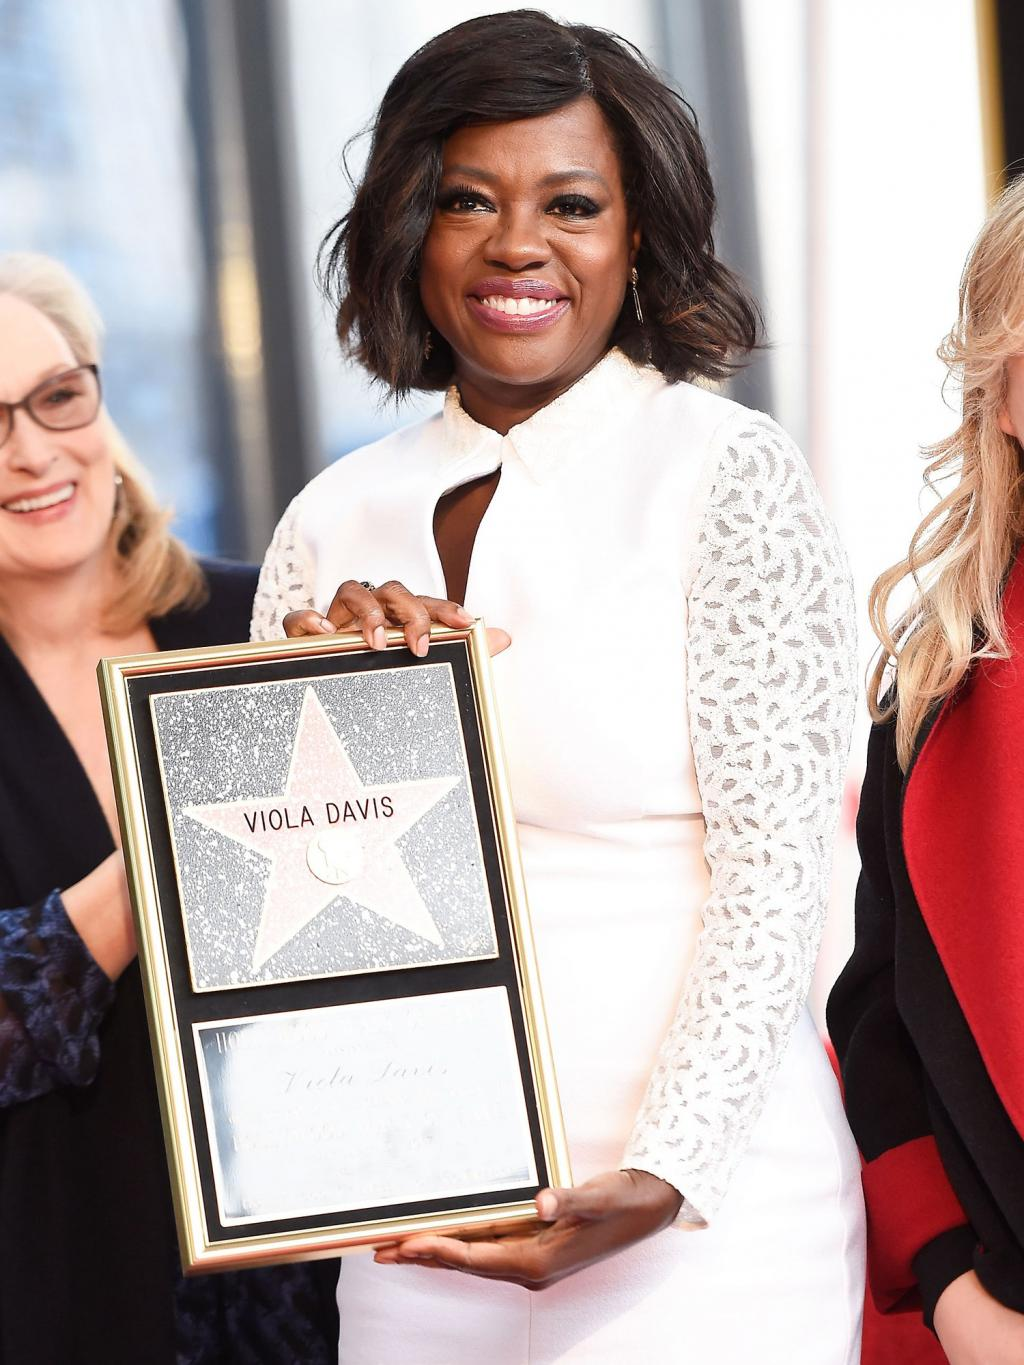 Viola Davis Remembers Her Dad During Emotional Walk of Fame Speech:       'I Wish He Were Here